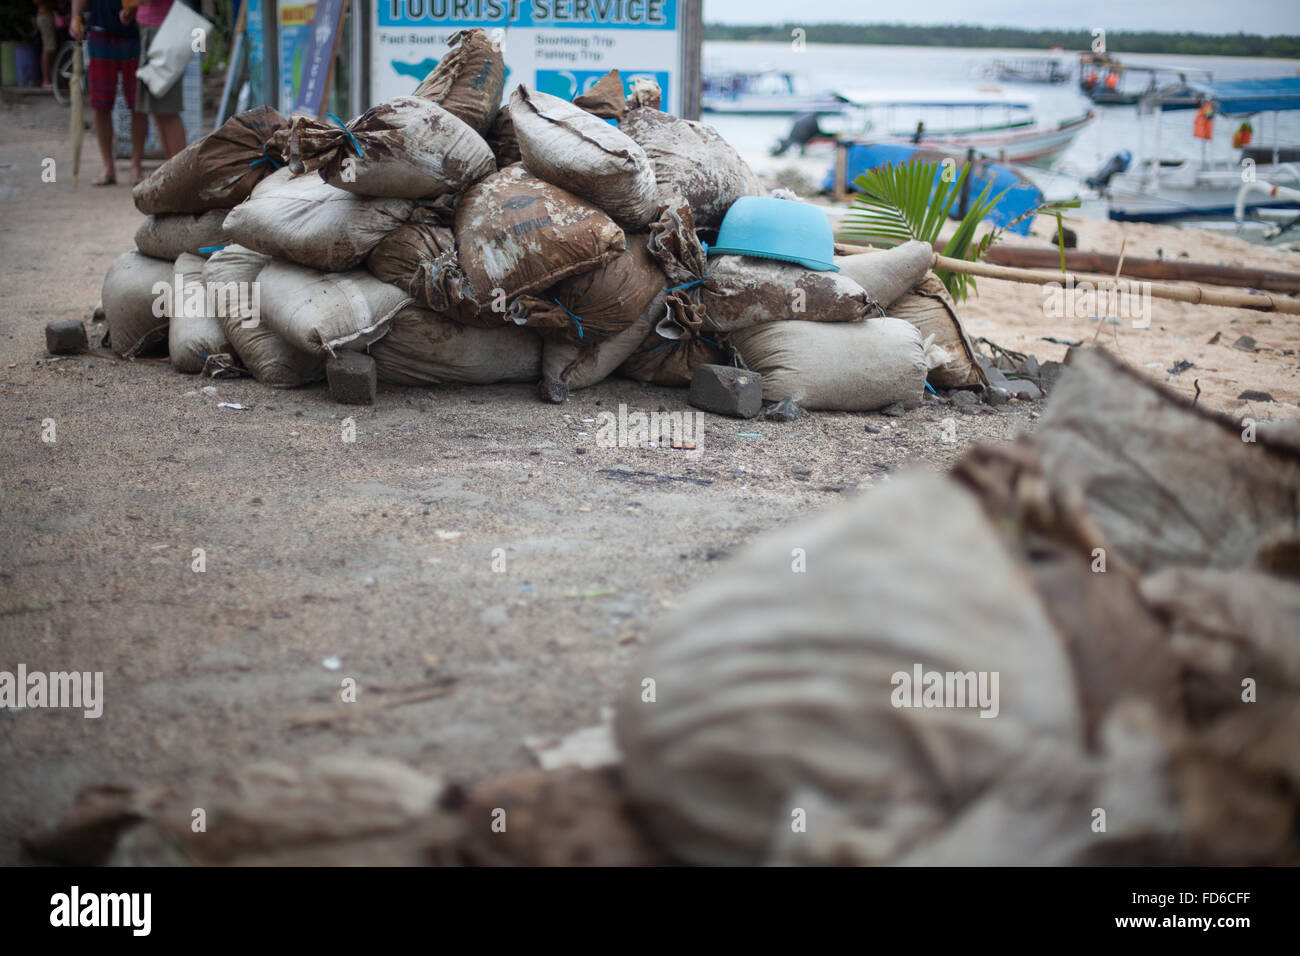 Heap Of Sacks On Sand At Beach - Stock Image